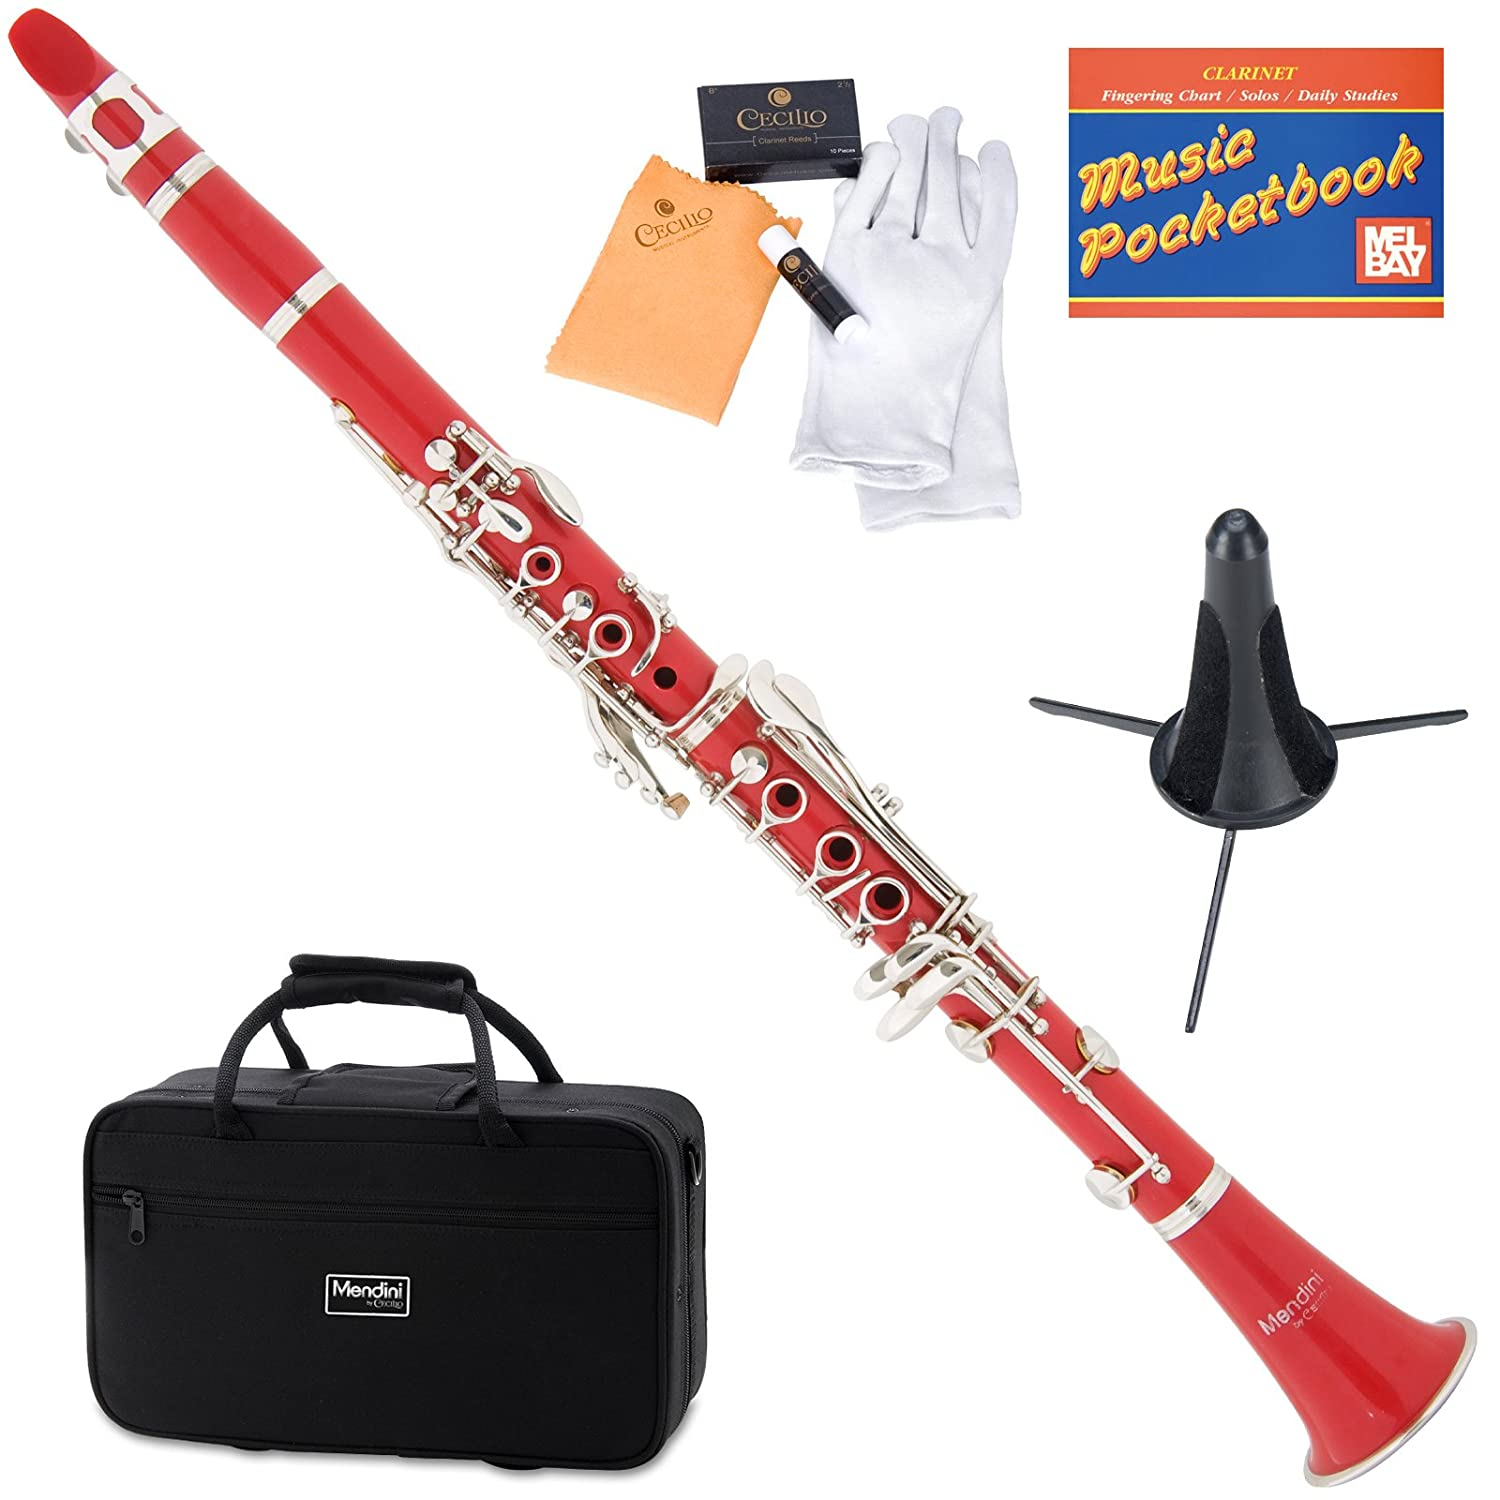 Mendini MCT-E+SD+PB Black Ebonite B Flat Clarinet with Case, Stand, Pocketbook, Mouthpiece, 10 Reeds and More Cecilio Musical Instruments